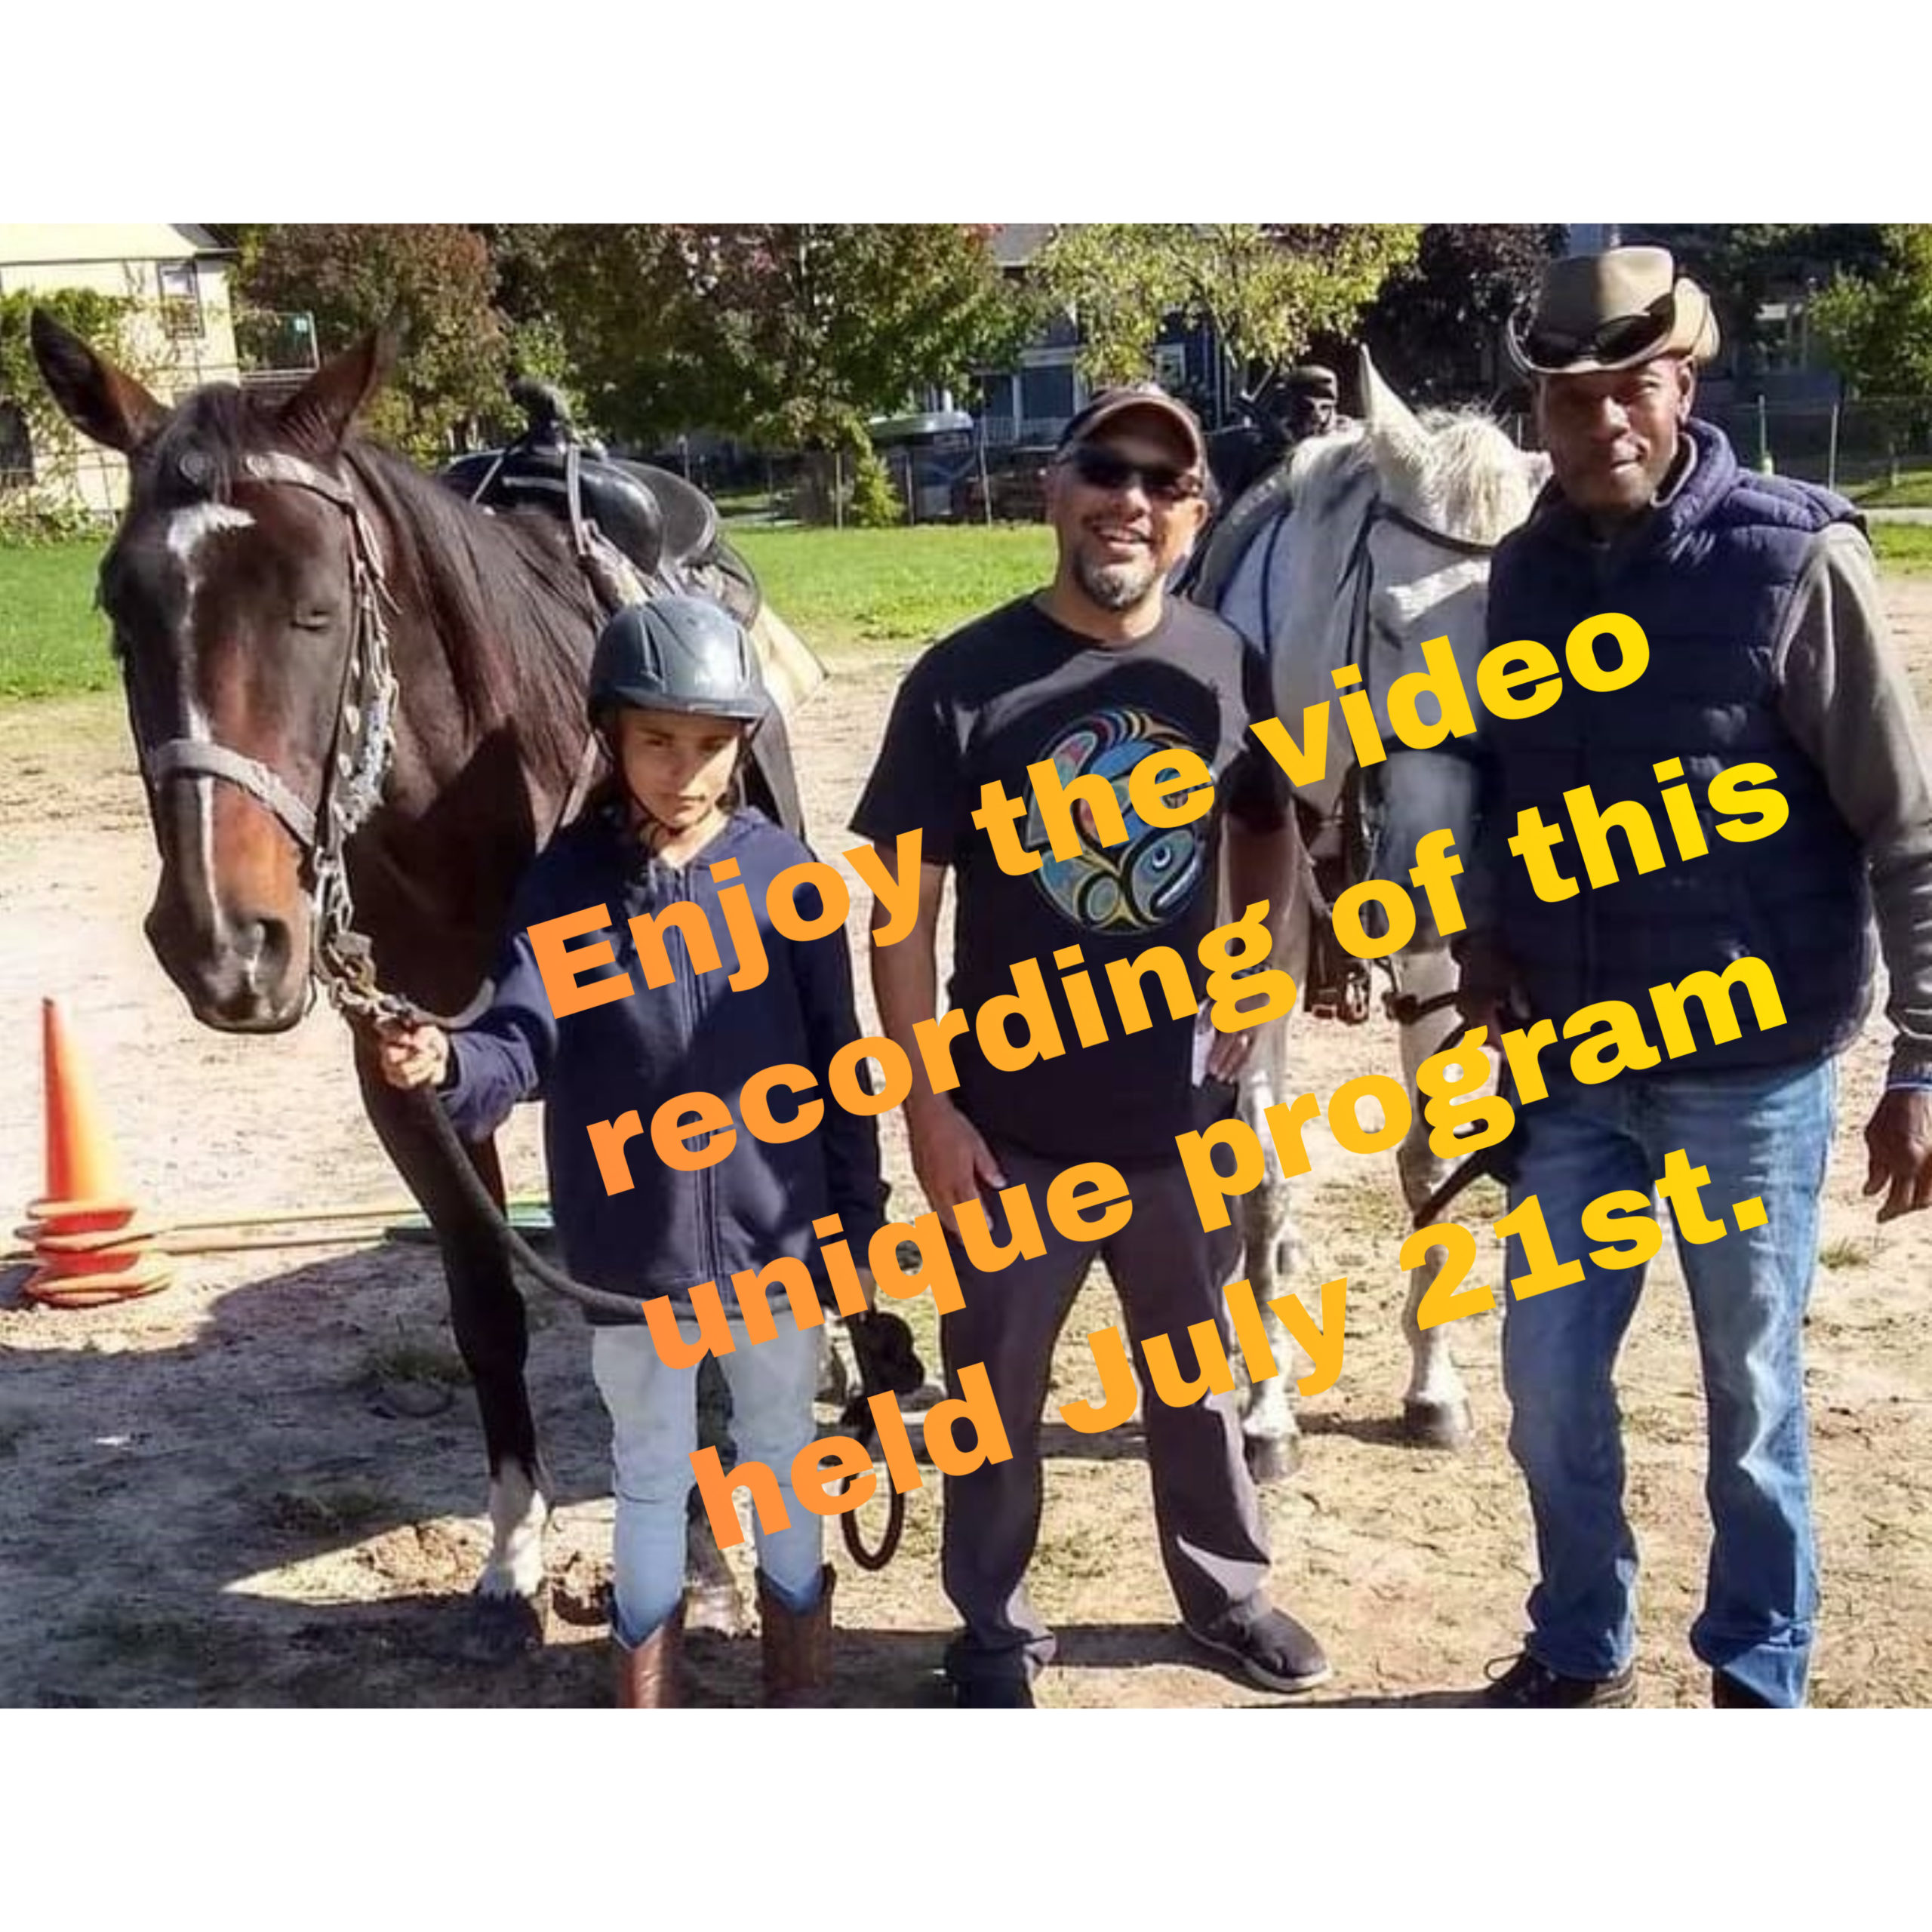 text on picture of 2 horses and 3 people about video of horse program